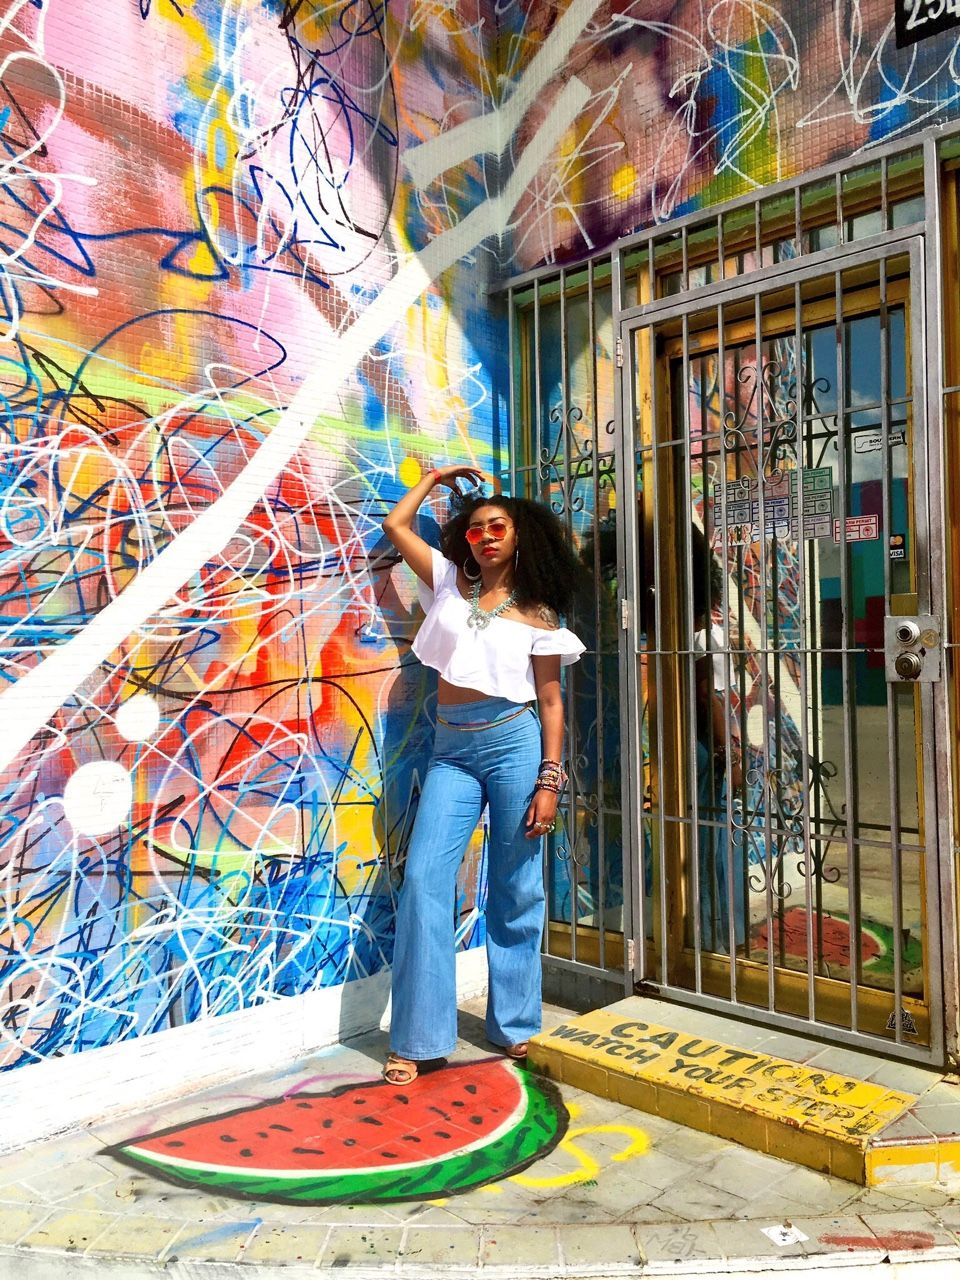 I really fell in love with Wynwood